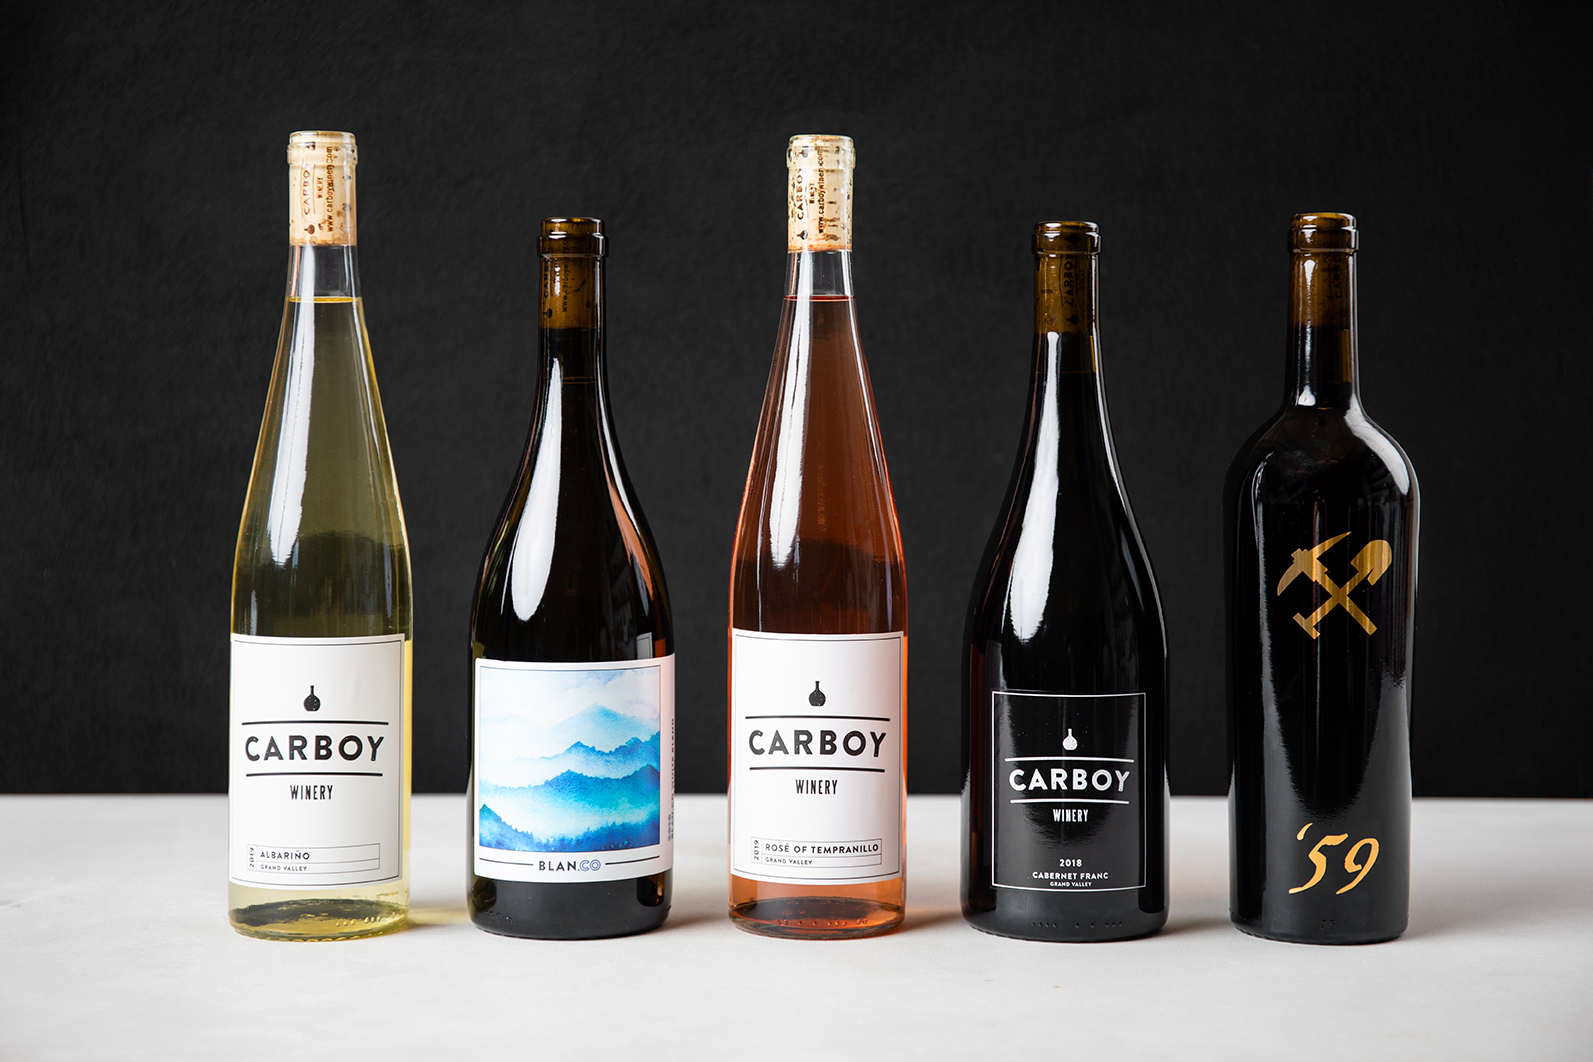 Five bottles of assorted Carboy Winery wines sit on a marble counter with a black background.